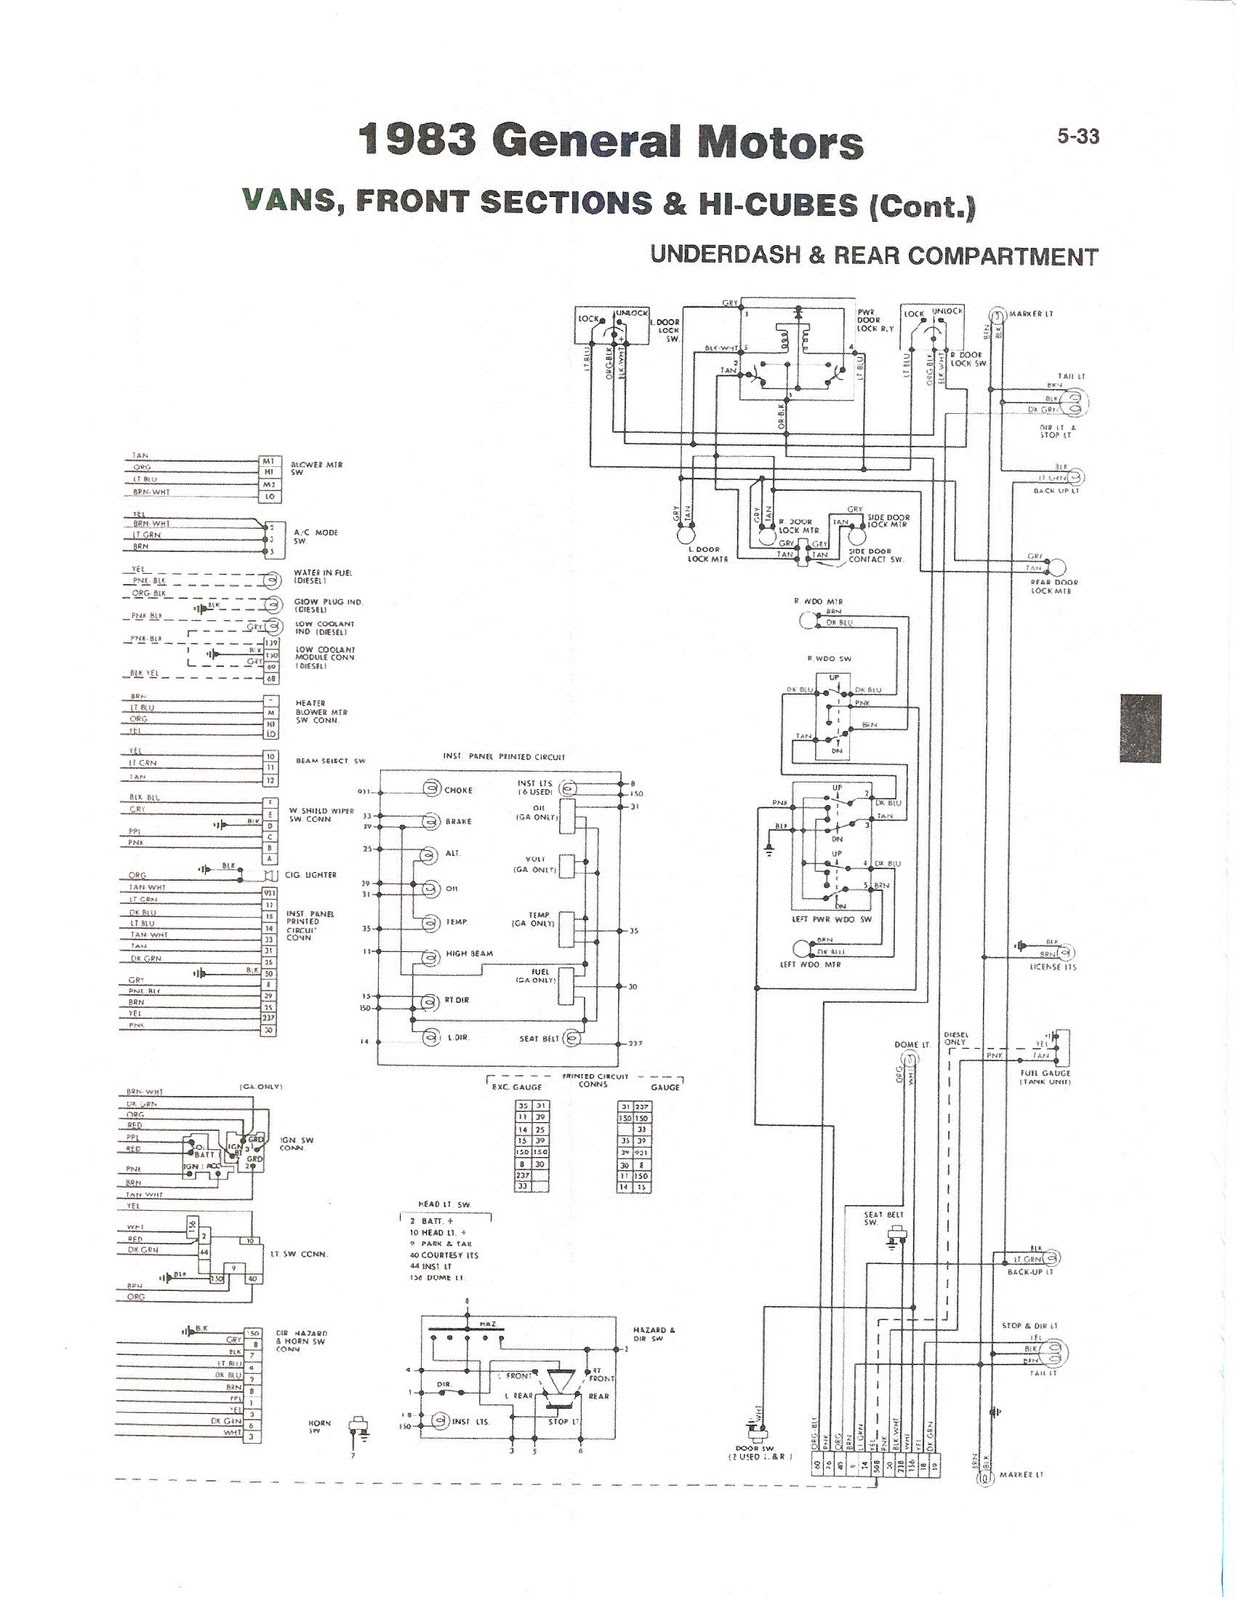 83+GM+Van+front+section+%26+Hi Cubes++underdash+%26+rear+compartment fleetwood rv wiring diagram rv generator wiring diagram \u2022 wiring 1988 Southwind Motorhome at alyssarenee.co